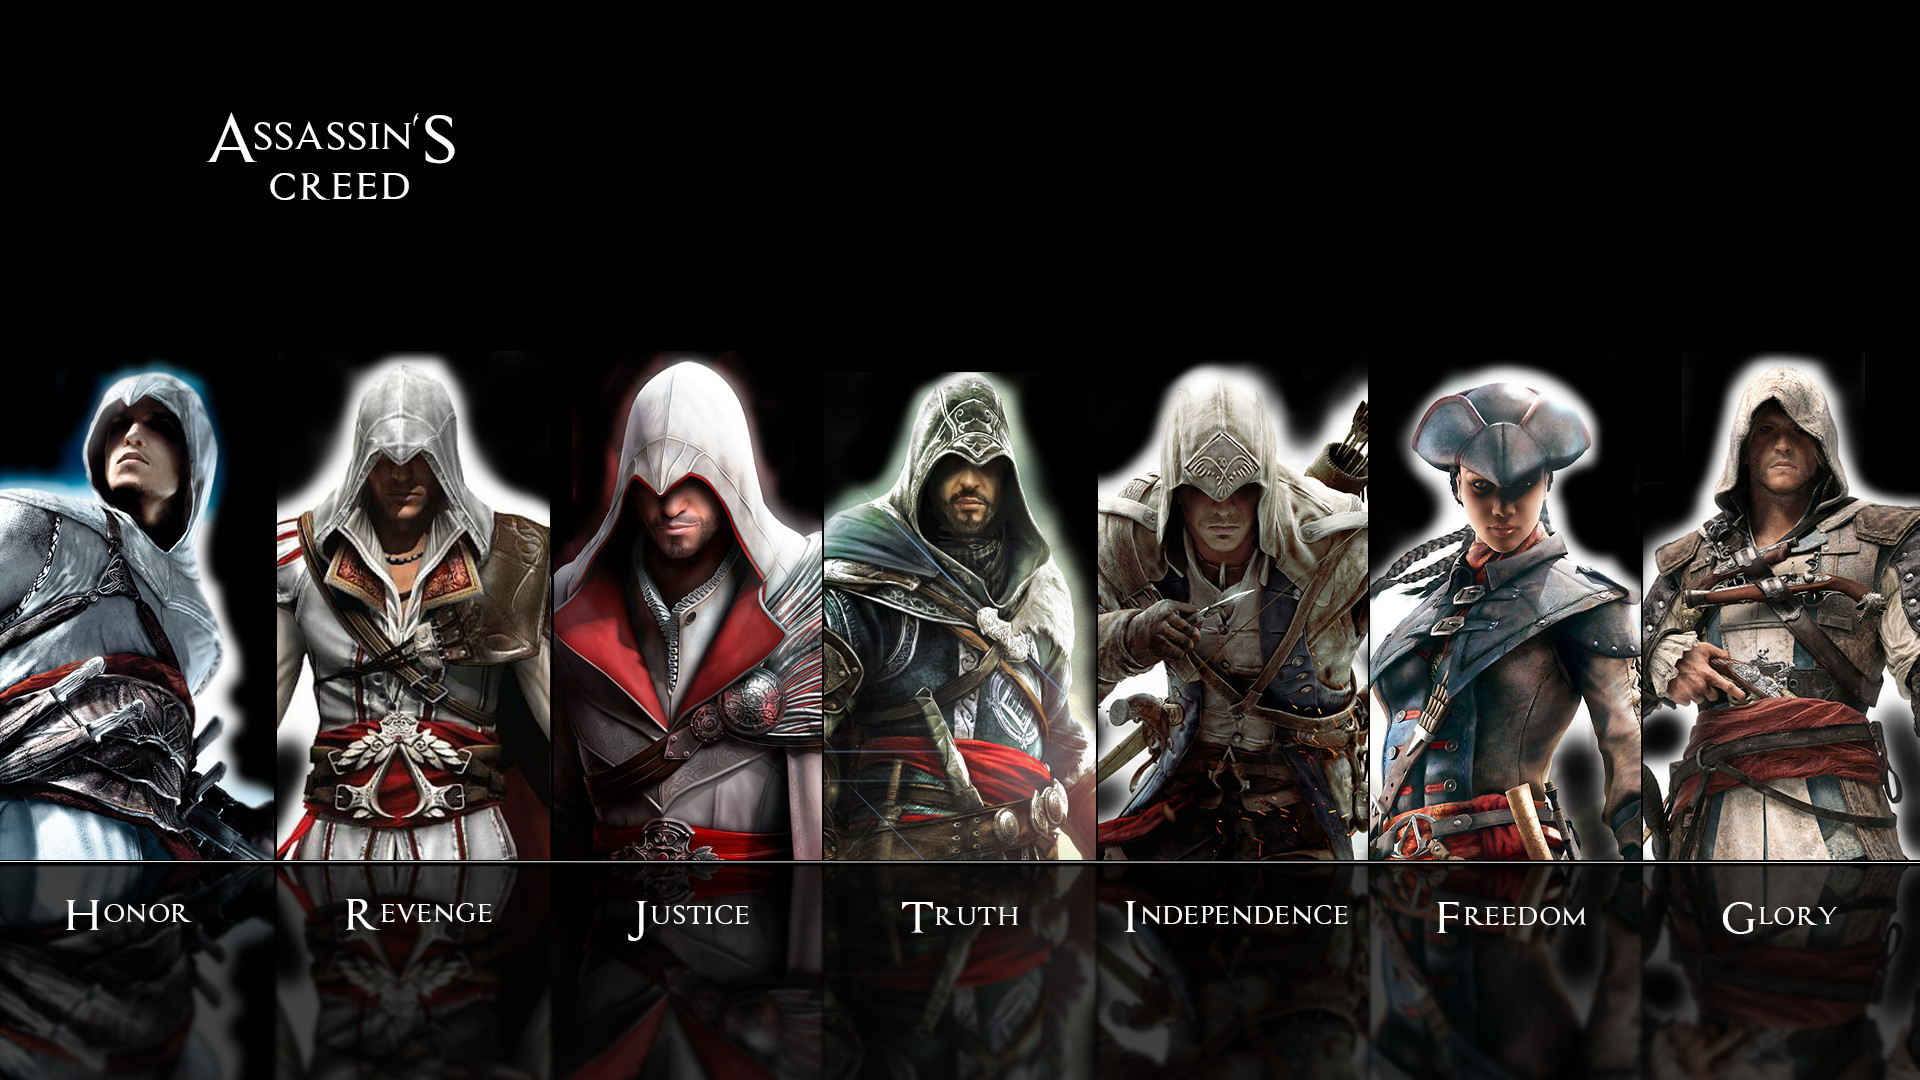 1920x1080 Assassin Creed Wallpaper High Quality